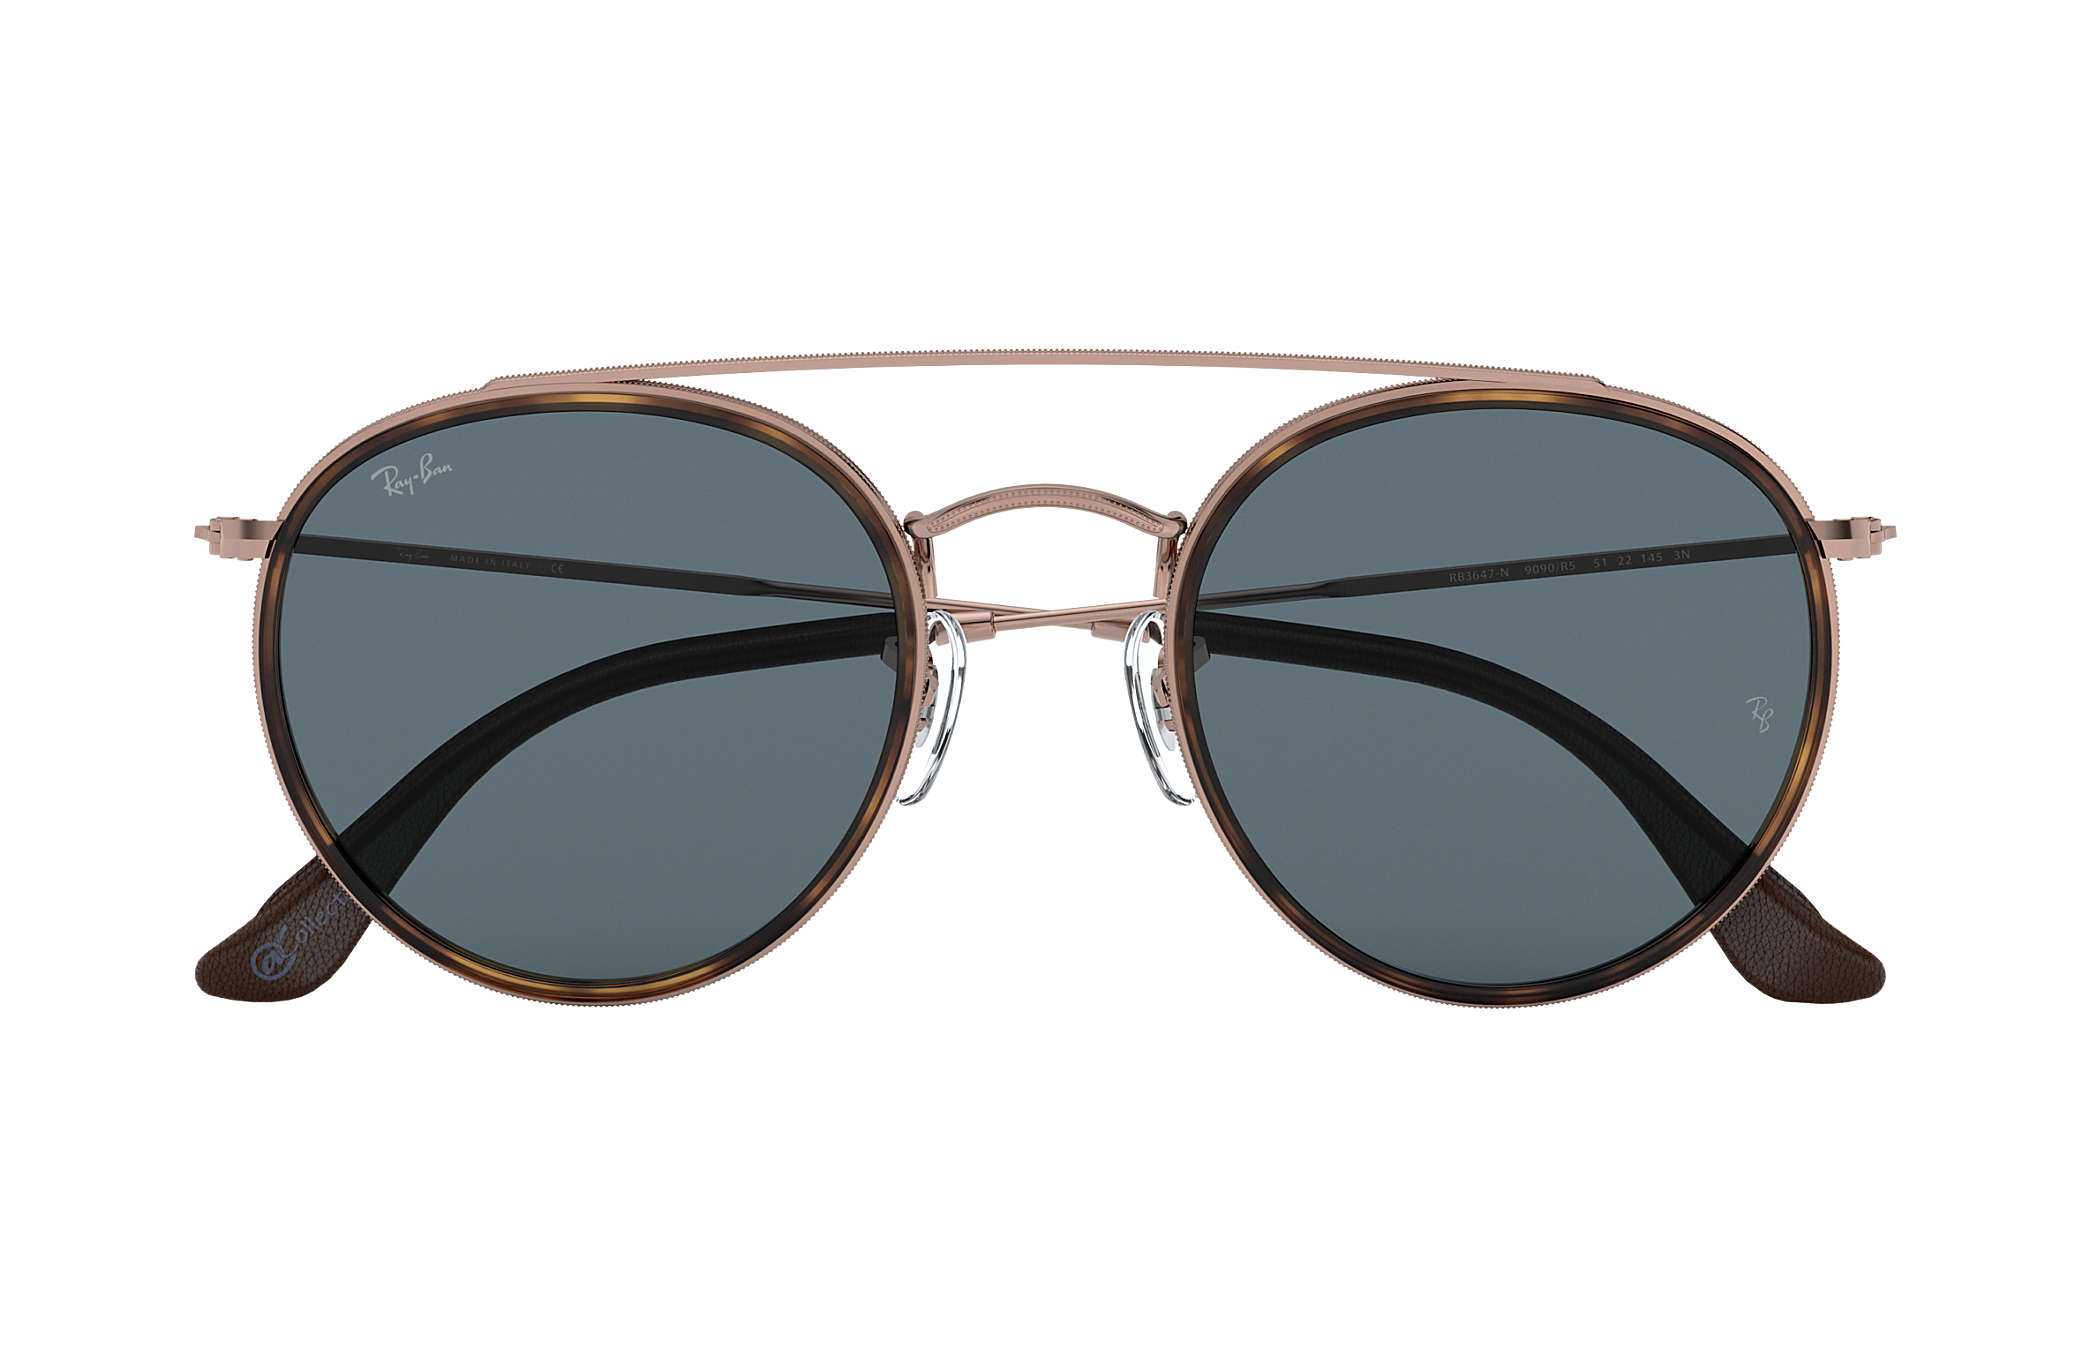 ... Ray-Ban 0RB3647N-ROUND DOUBLE BRIDGE  COLLECTION Bronze-Copper SUN ... 3be02d7ad1